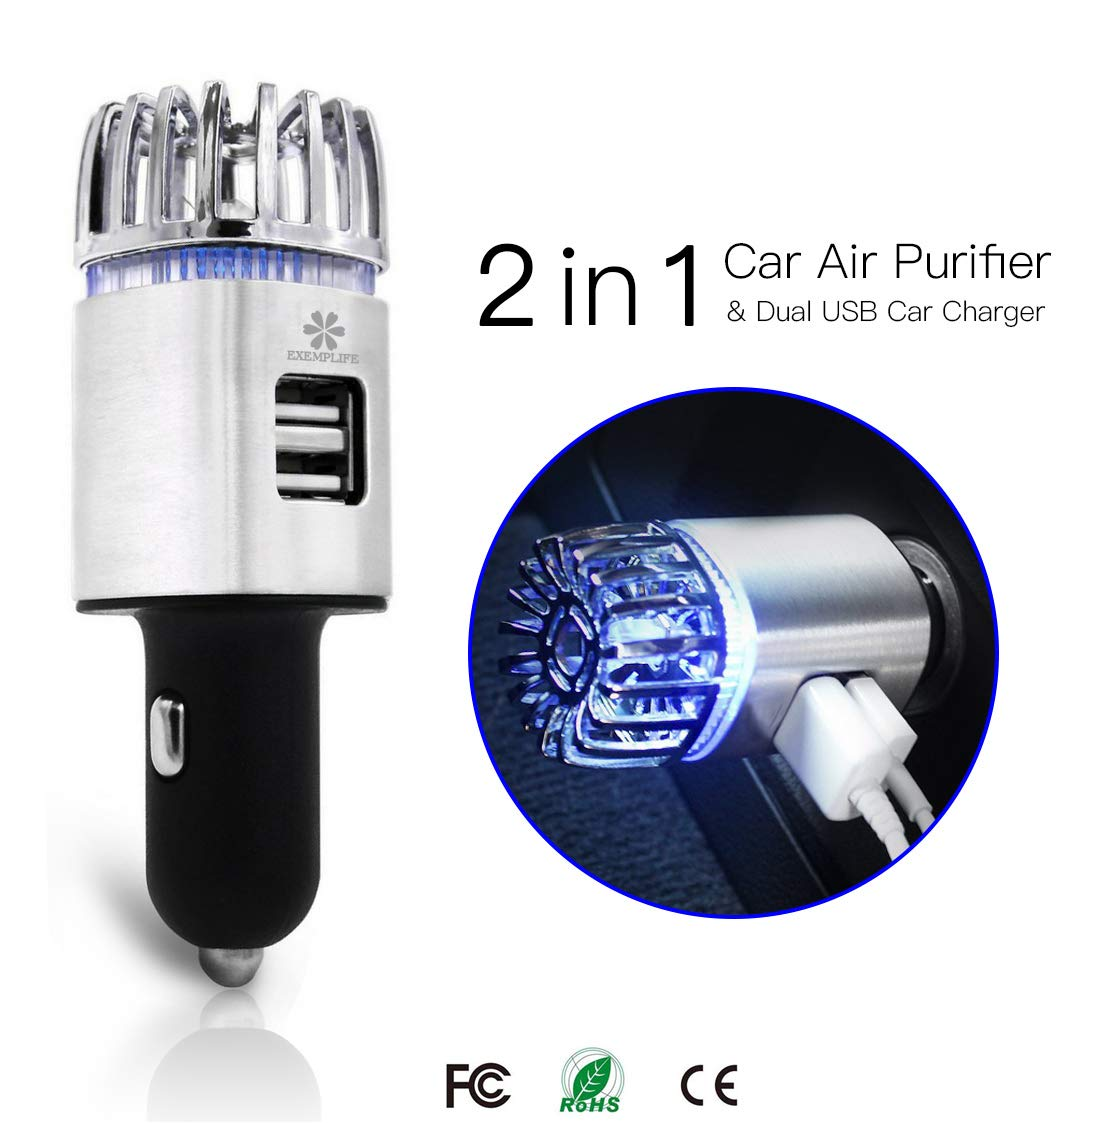 Exemplife Car Air Purifier, Freshener Adapter with 2 USB Ports,Car Air Ionizer Remove Smoke, Bad Smell and Odors,Keep The Air in Car Fresh,Champagne… Champagne…